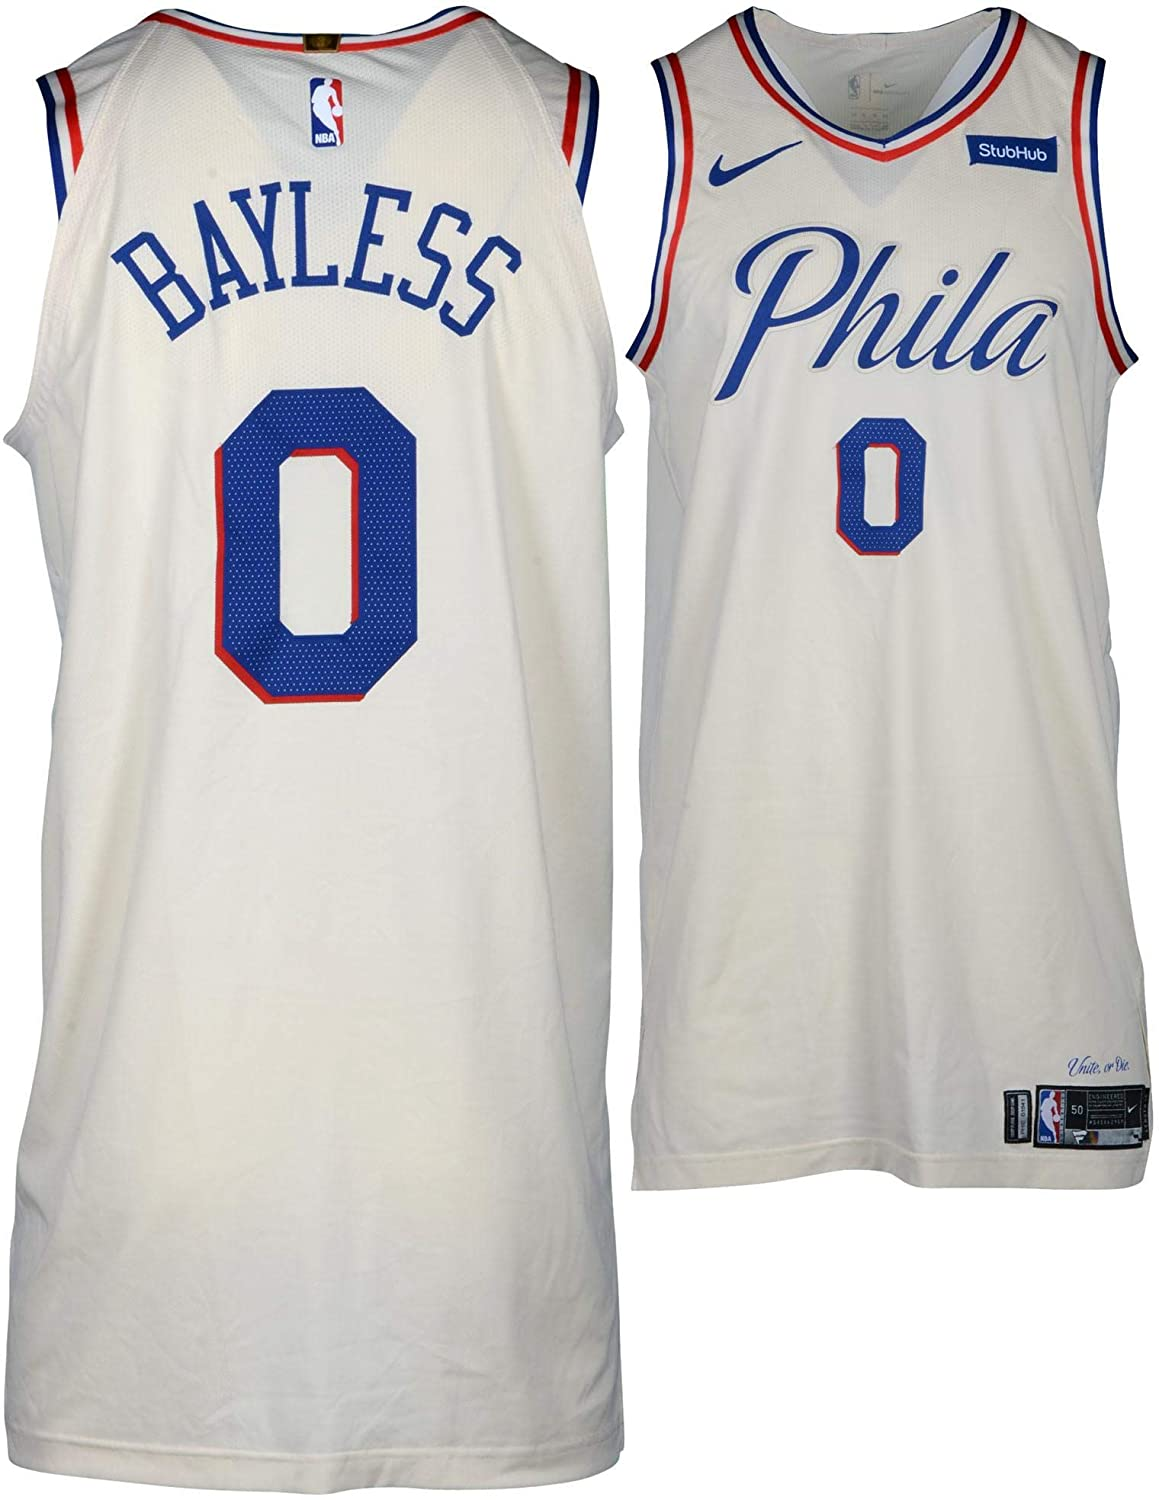 new concept 33148 8aa62 Jerryd Bayless Philadelphia 76ers Game-Used #0 Cream Jersey ...